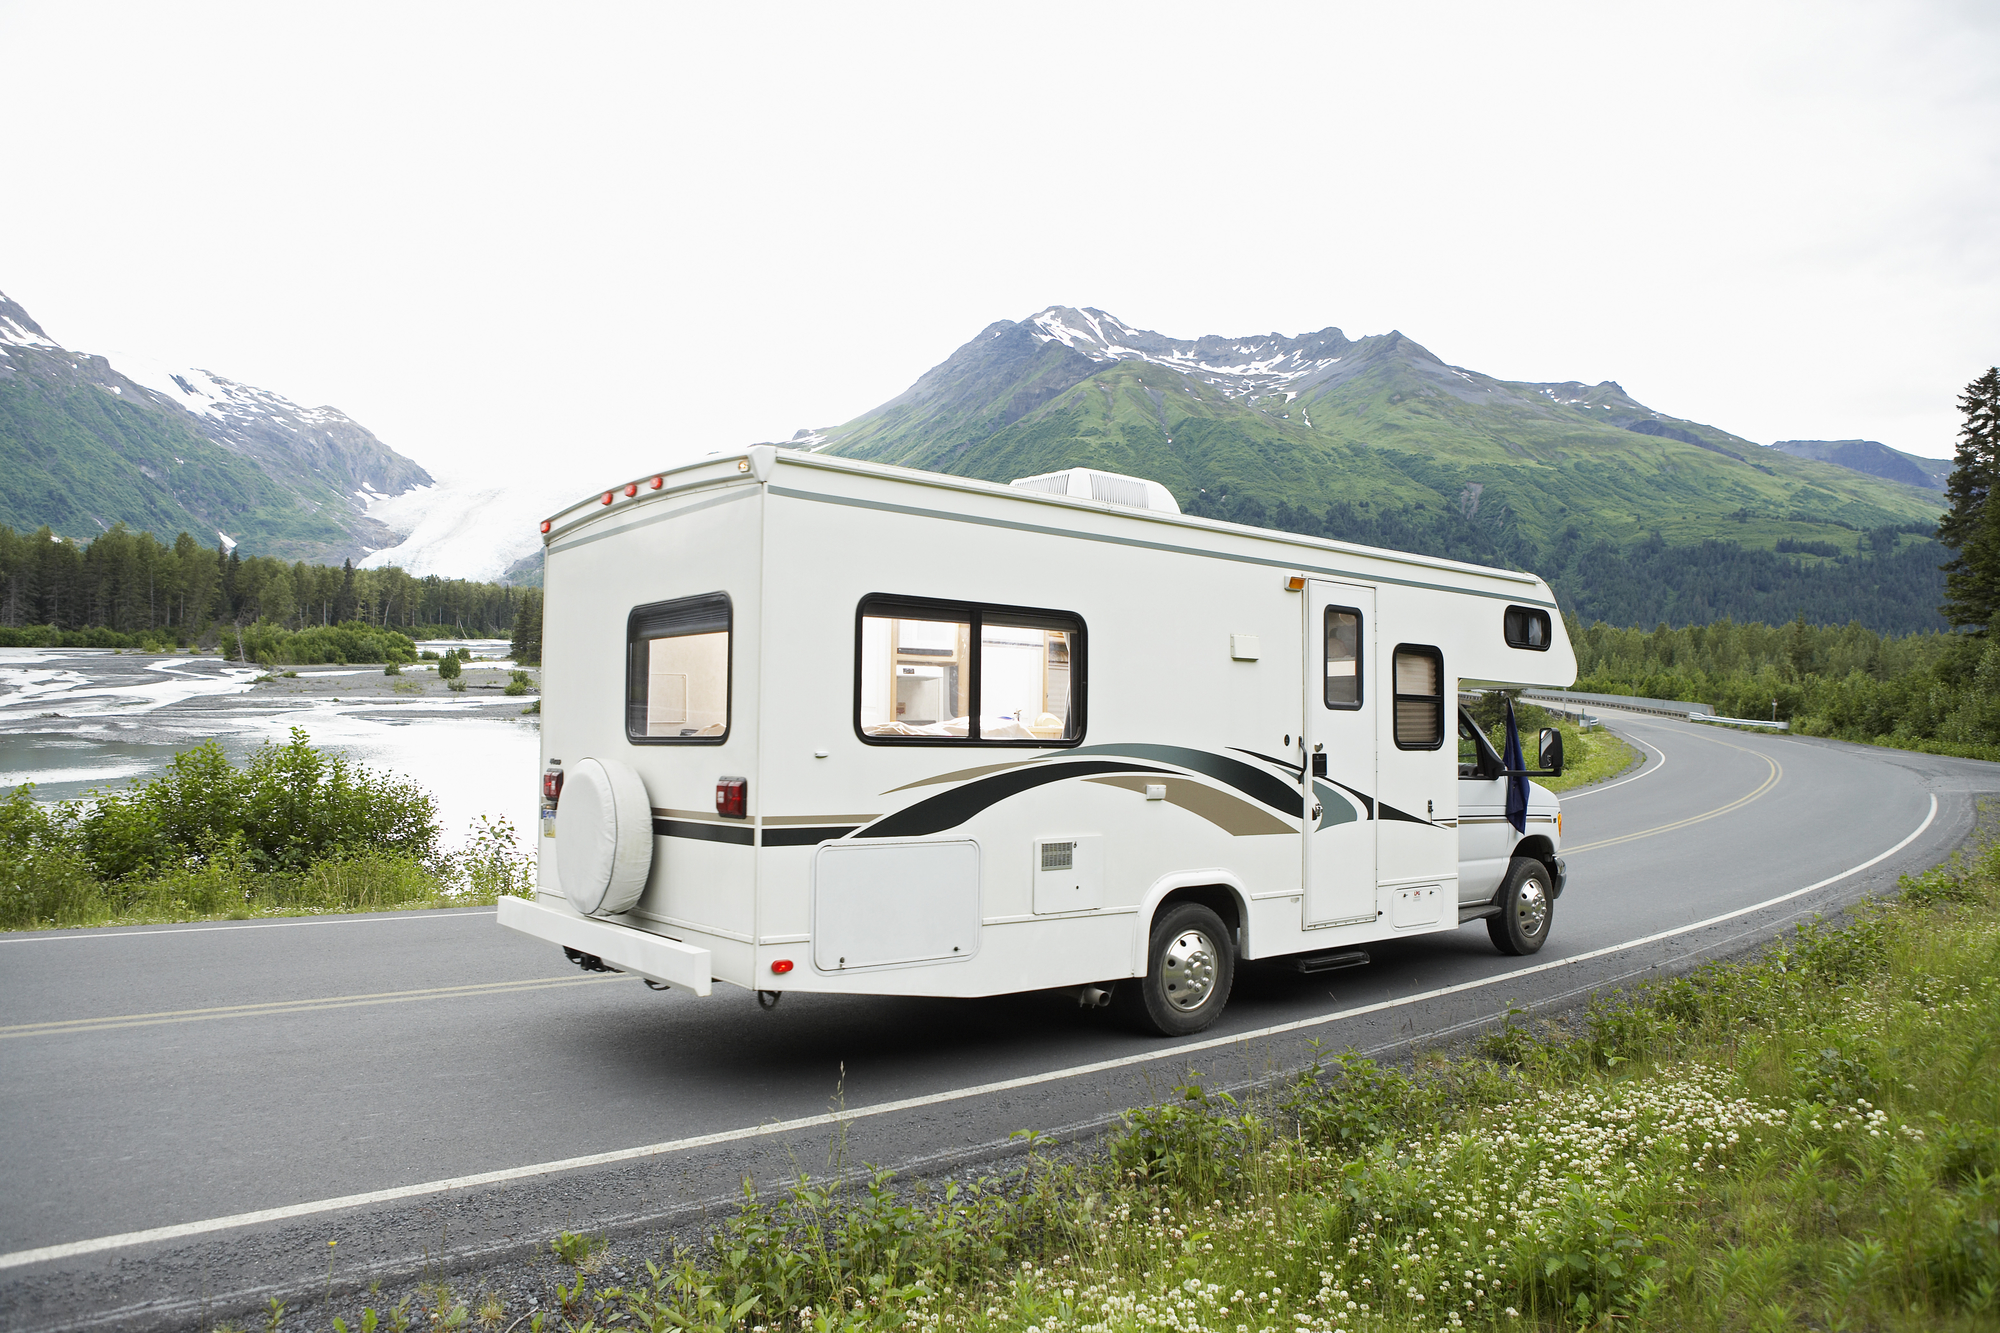 Motorhome driving on road